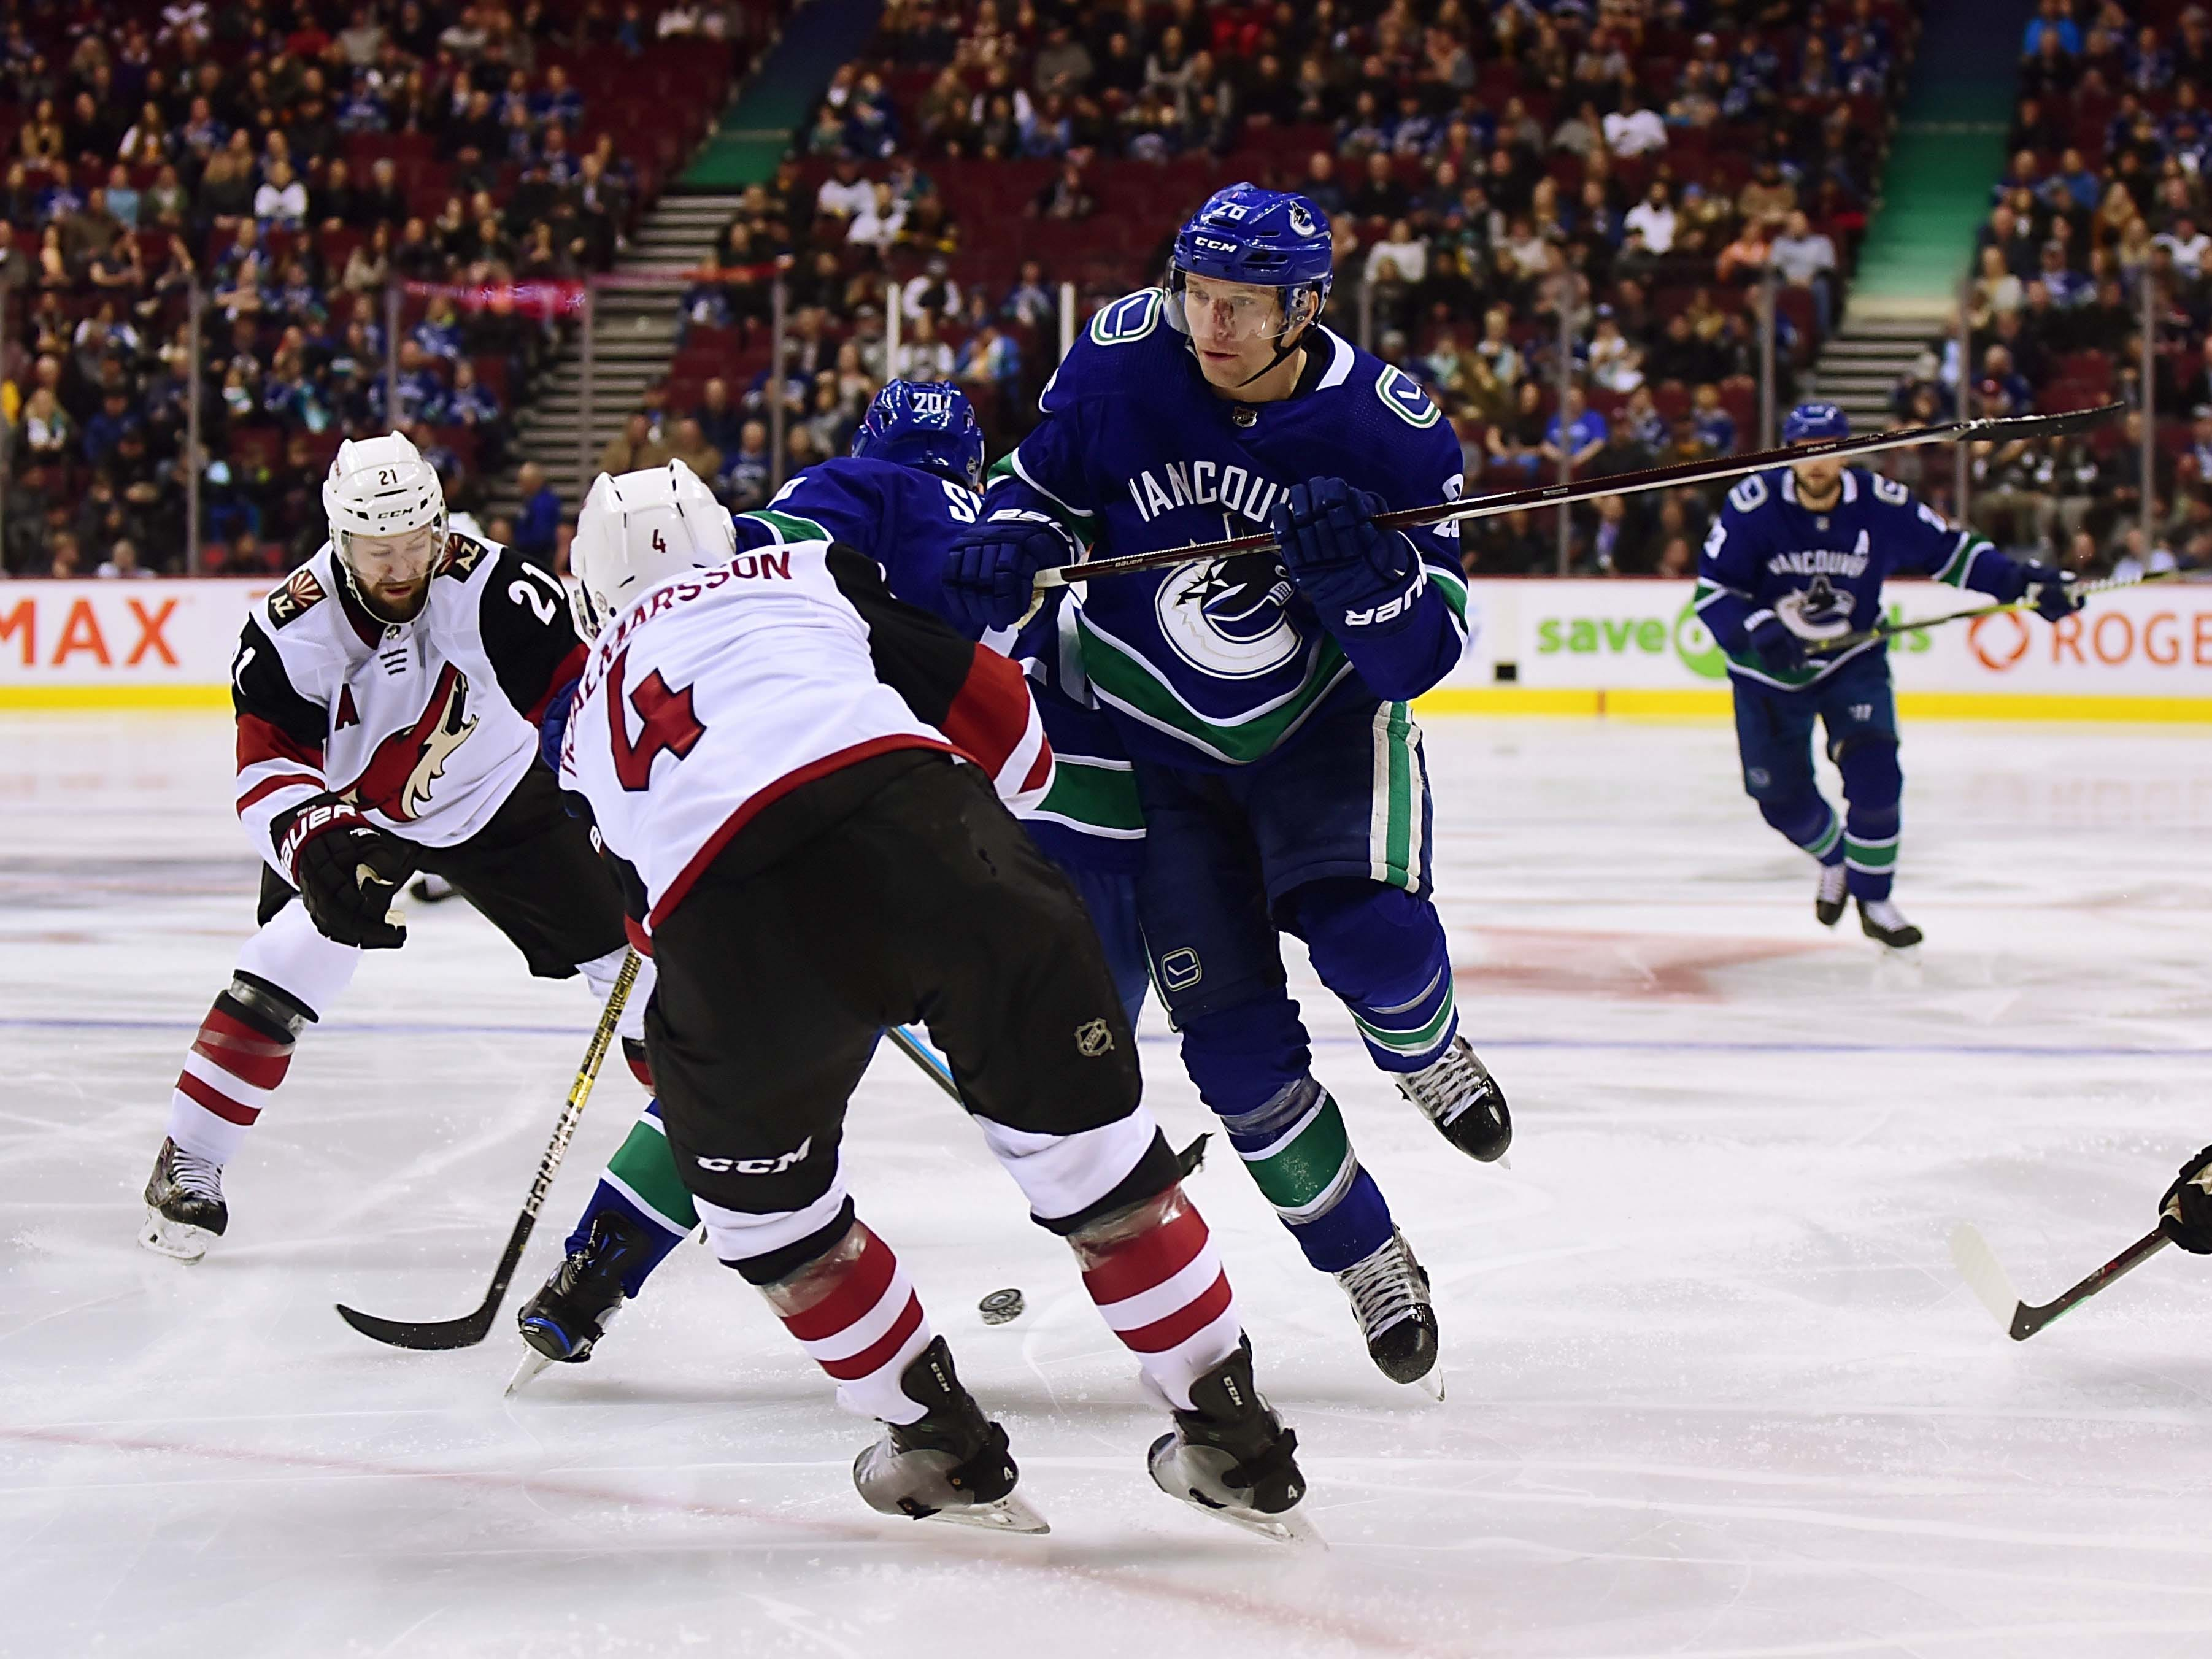 Jan 10, 2019; Vancouver, British Columbia, CAN;  Vancouver Canucks forward Antoine Roussel (26) jumps over Arizona Coyotes defenseman Niklas Hjalmarsson (4) during the first period at Rogers Arena. Mandatory Credit: Anne-Marie Sorvin-USA TODAY Sports